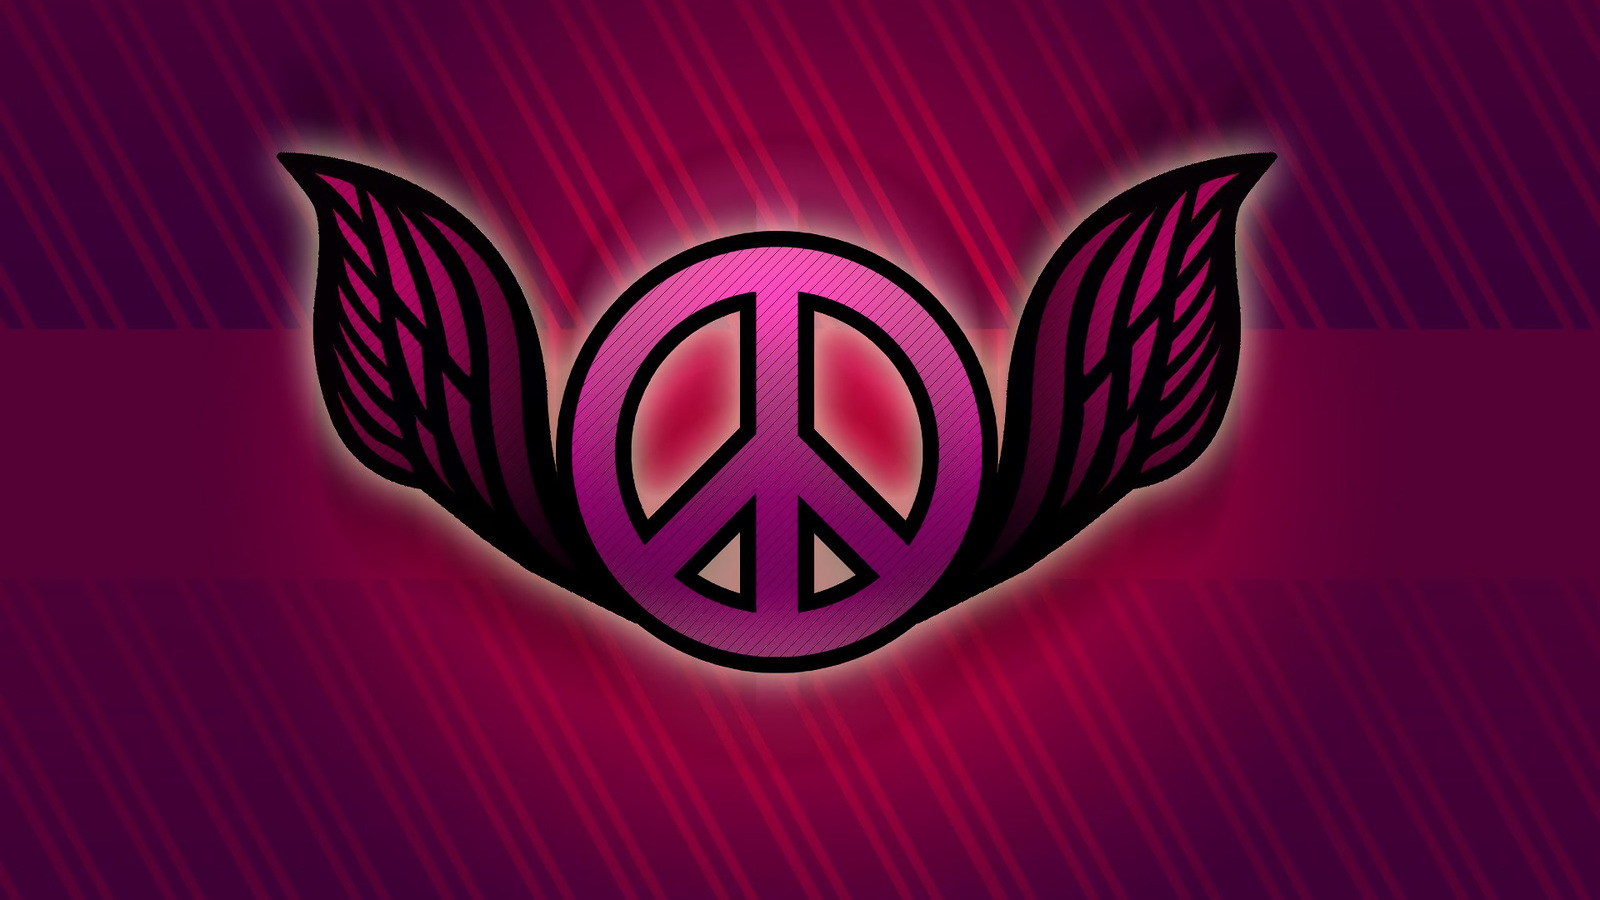 1600x900 peace logo abstract 1600x900 resolution hd 4k wallpapers images backgrounds photos - Peace hd wallpapers free download ...